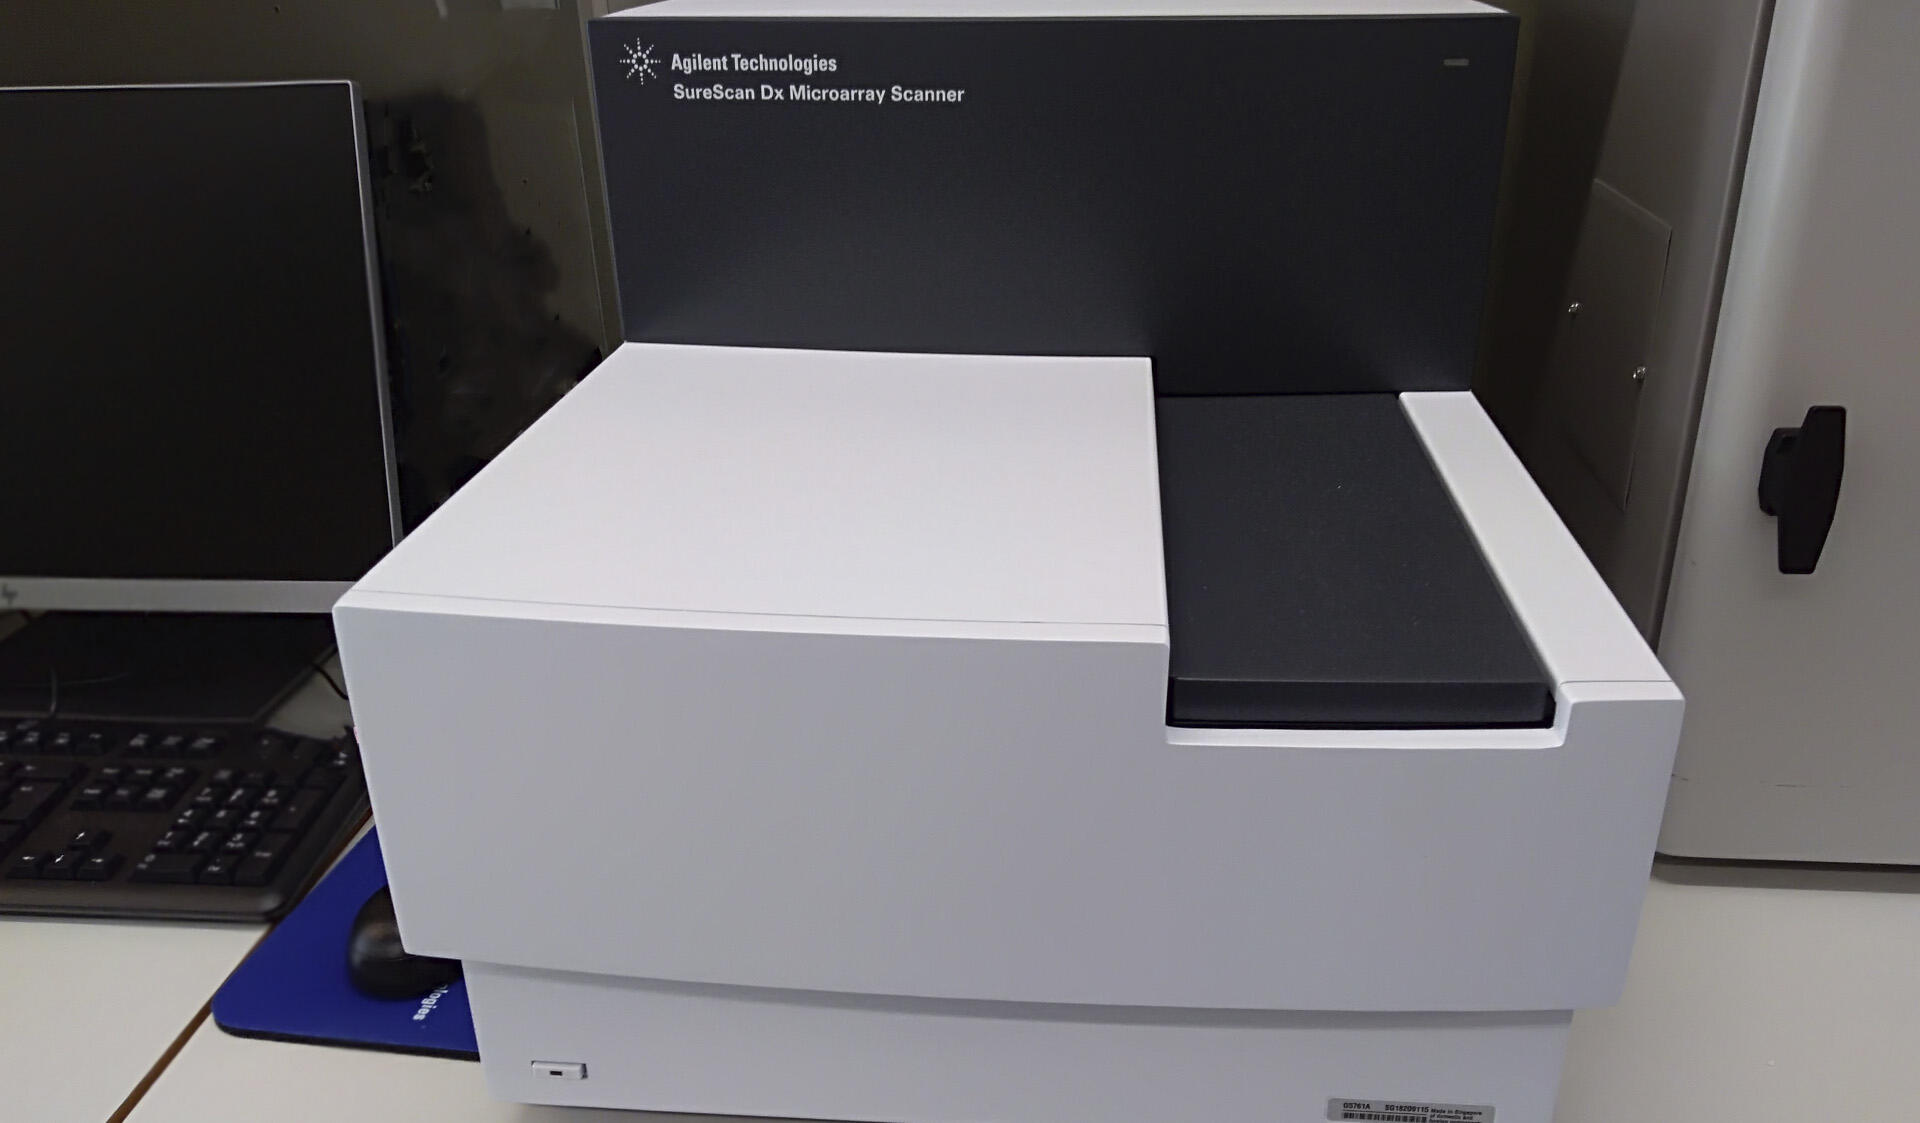 Agilent SureScan Dx Microarray Scanner is suitable also for diagnostic slides.